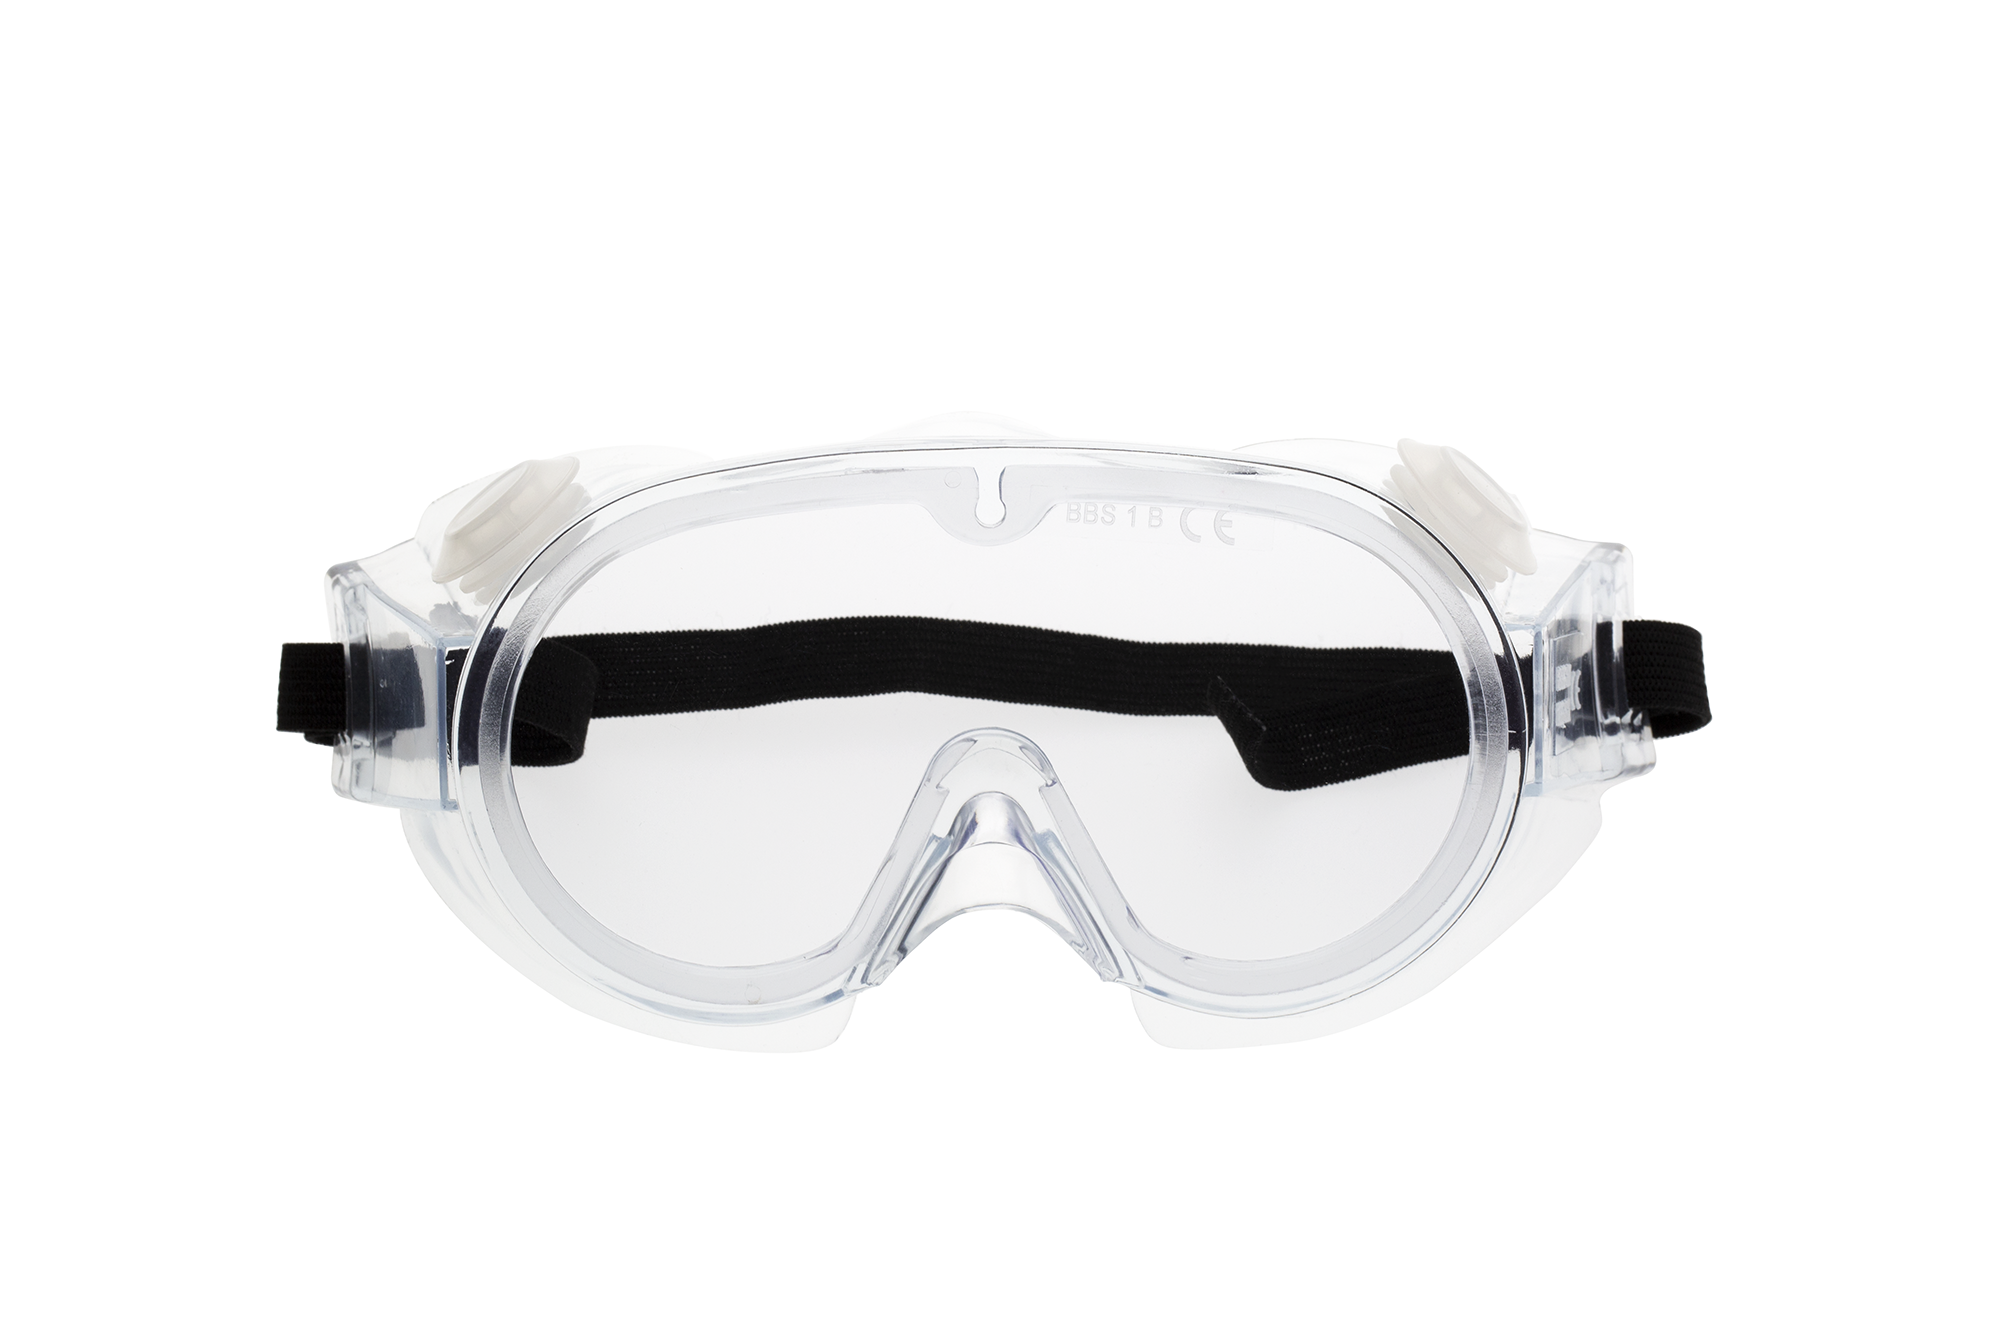 現貨 小童版 抗飛濺全包護目鏡 KF01 | Protective Splash Goggles for Child KF01